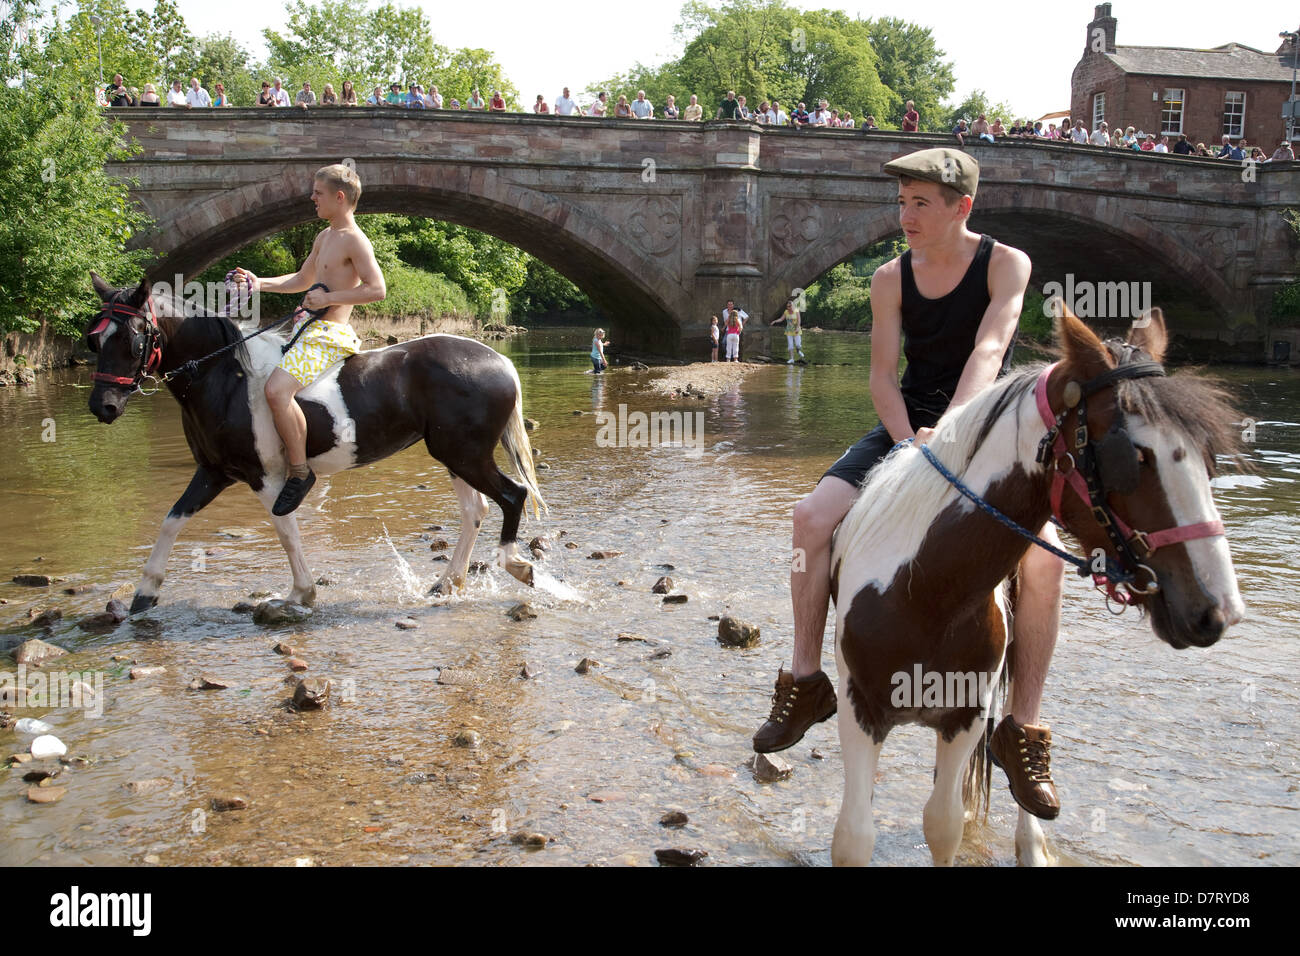 Boys riding horses in the river Eden during the Appleby Fair, an annual gathering of Gypsy and Traveller communities Stock Photo